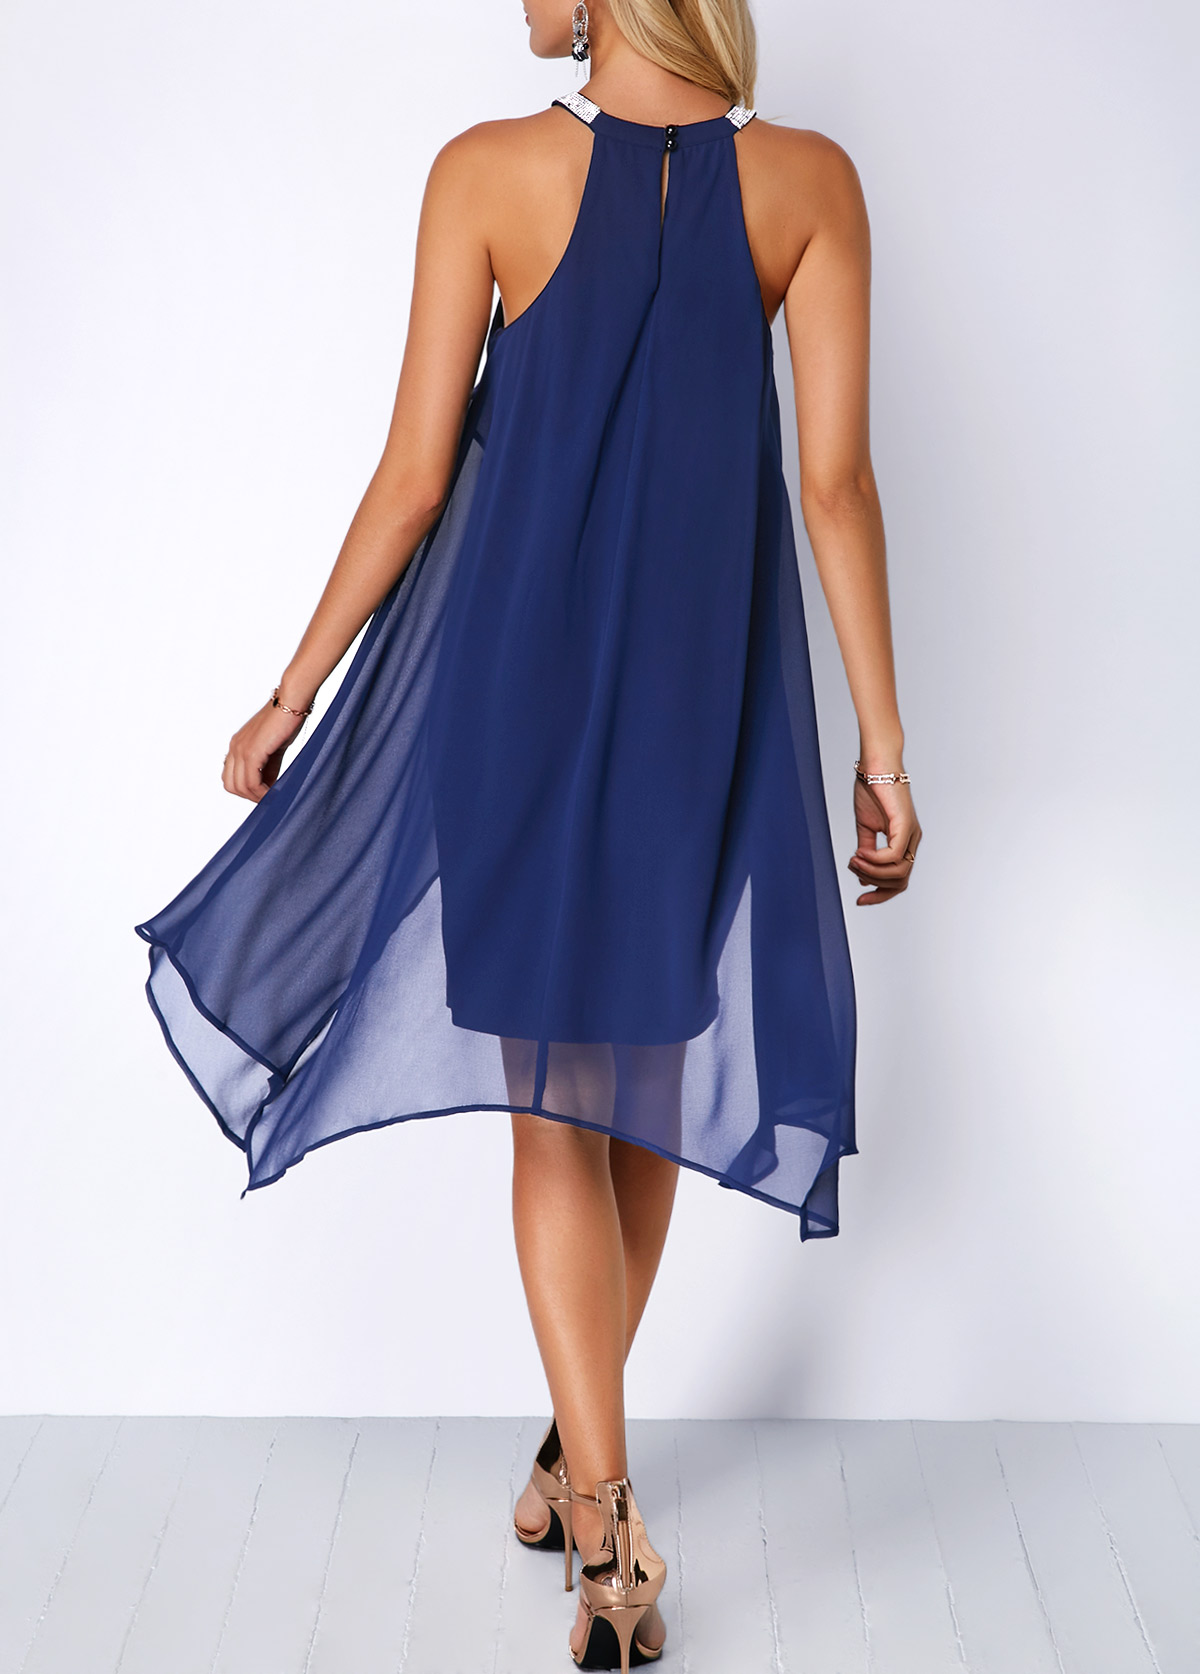 6b8d6aed84608 Blue Chiffon Overlay Embellished Neck Dress | Rosewe.com - USD $35.24